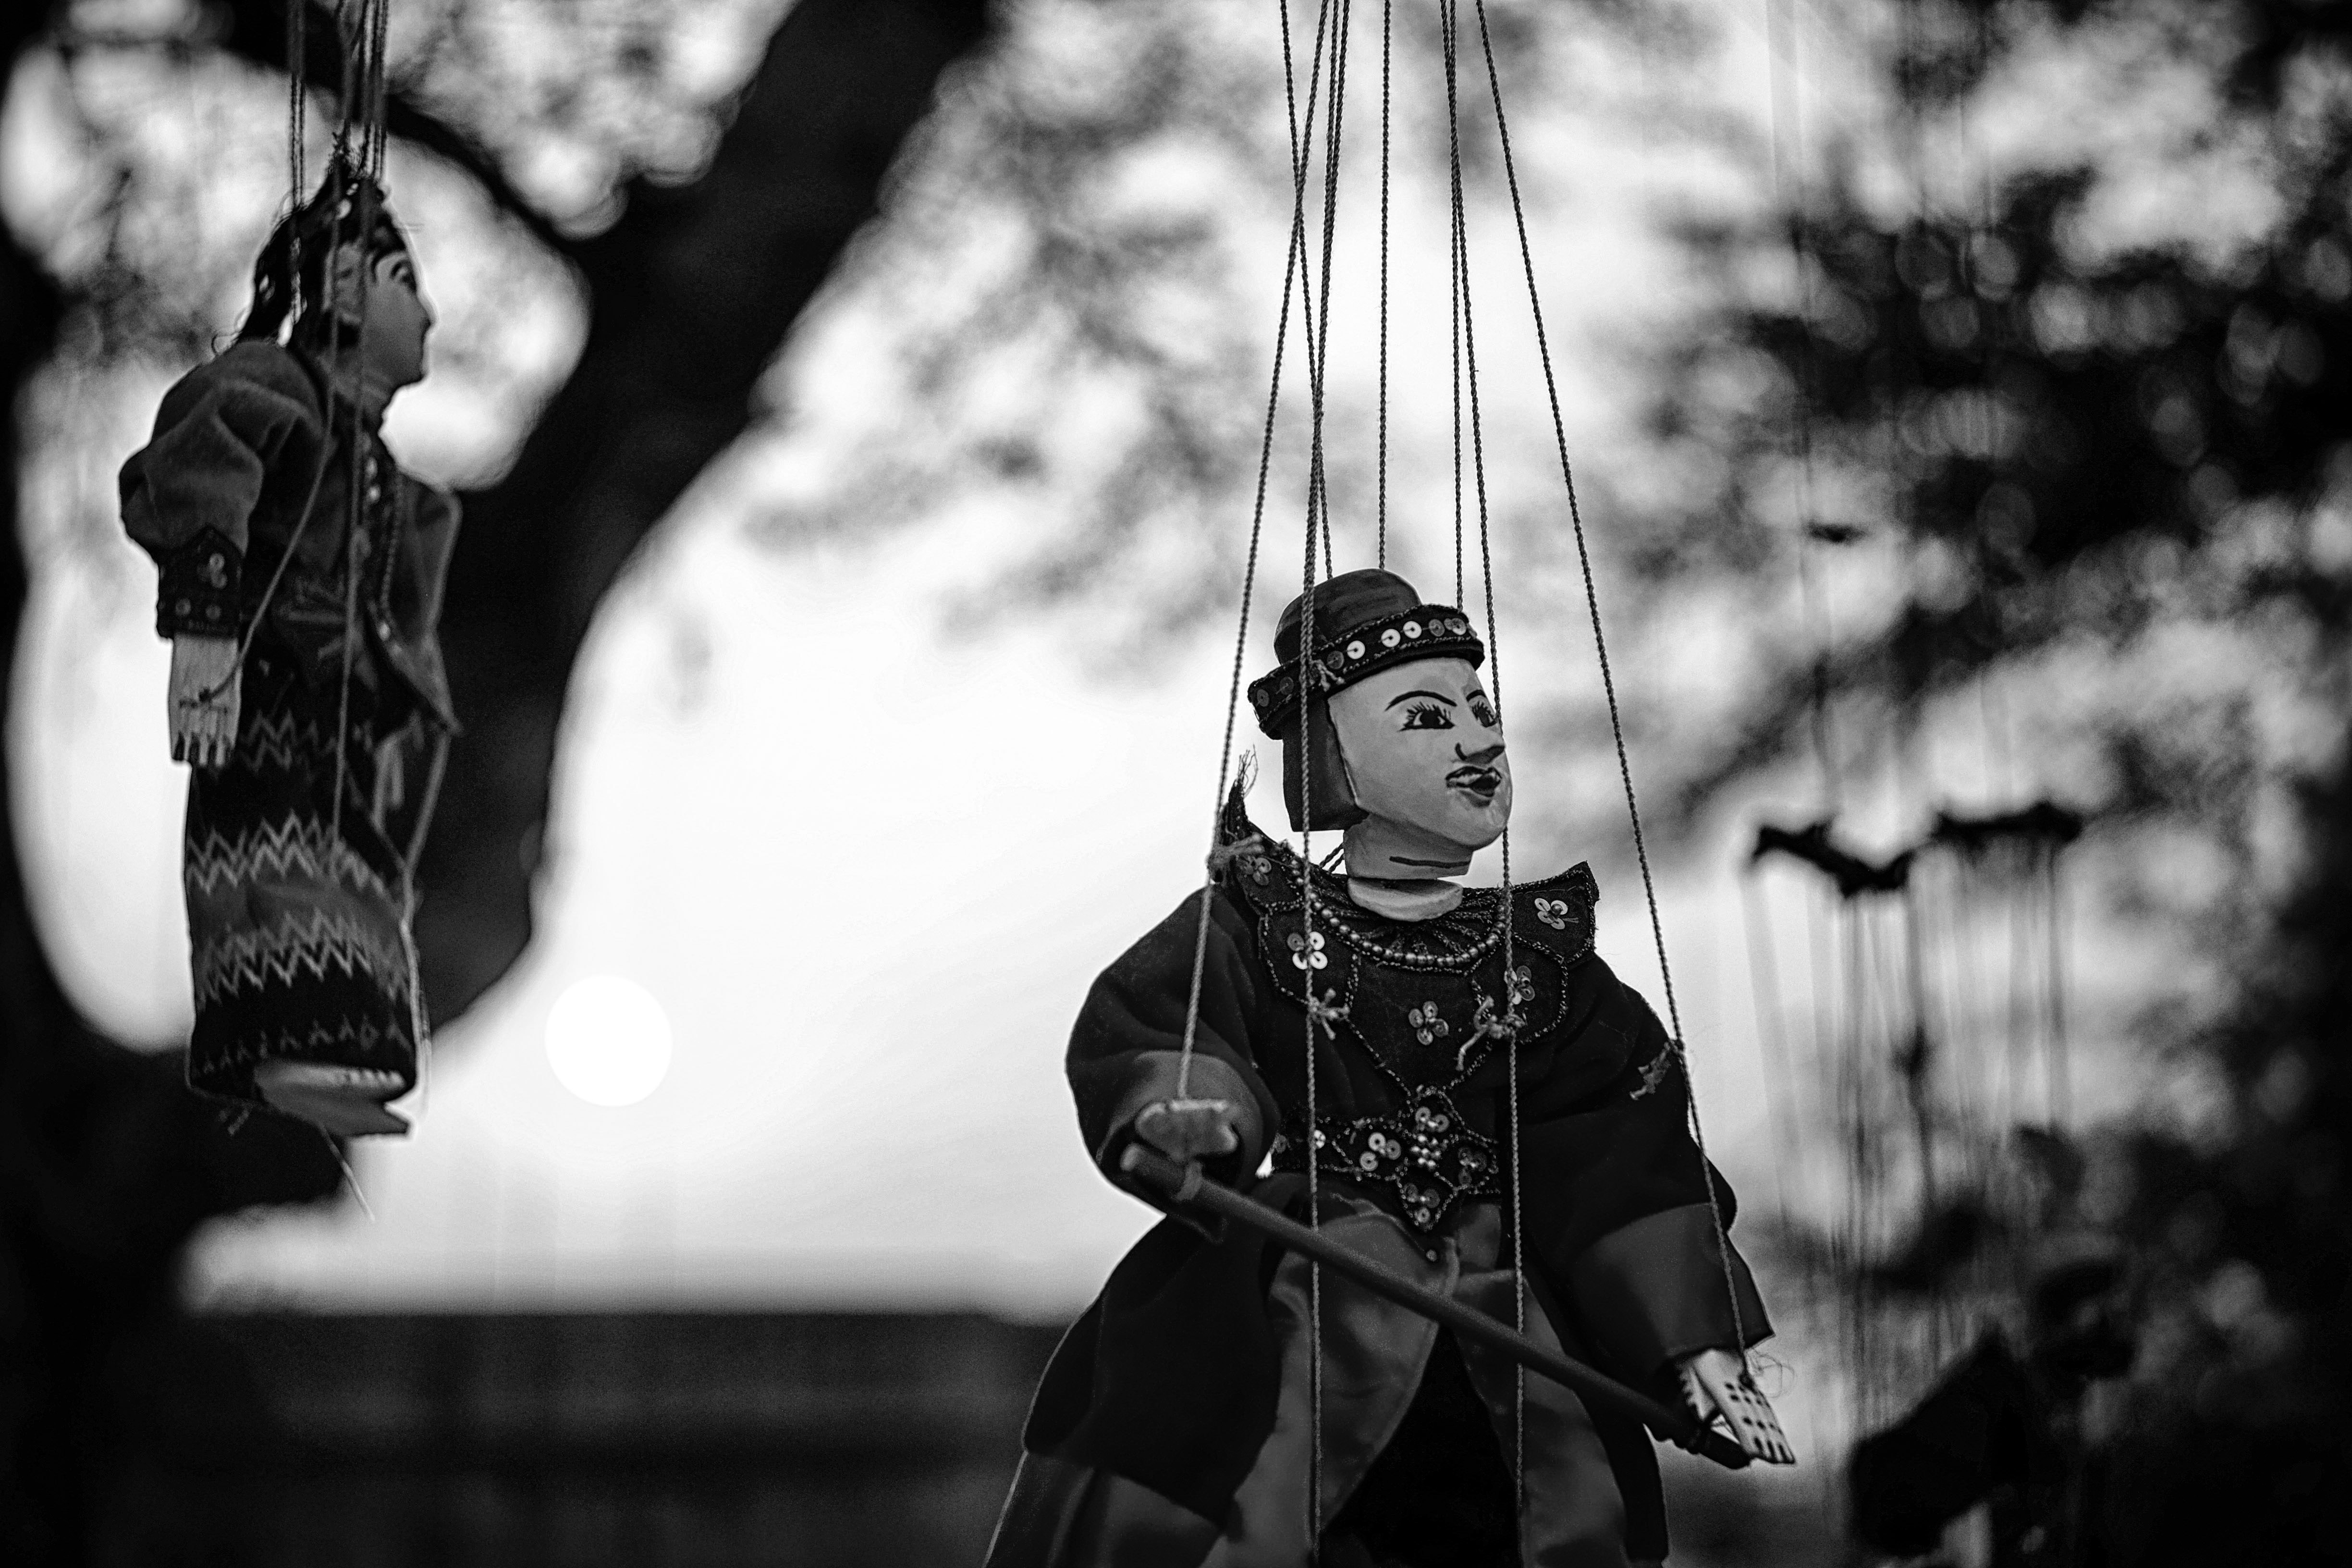 Grayscale of Two String Puppets, Black-and-white, Blurred background, Daytime, Hanging, HQ Photo